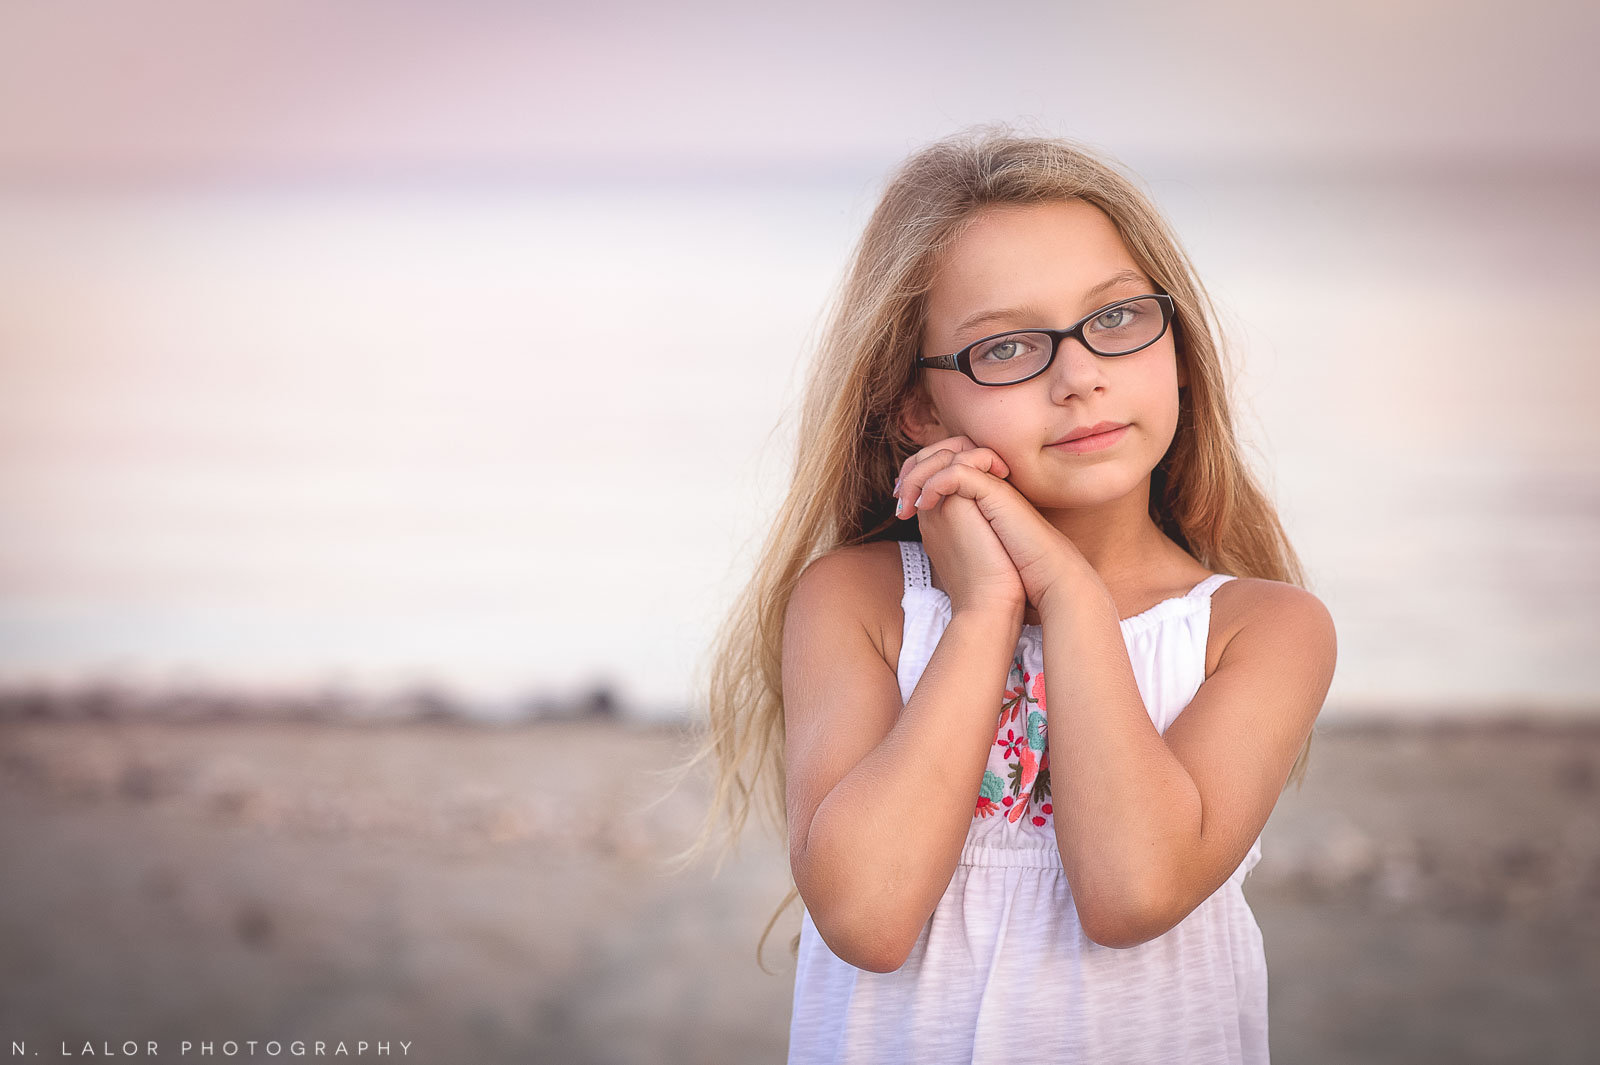 nlalor-photography-styled-beach-photo-session-milford-ct-14.jpg